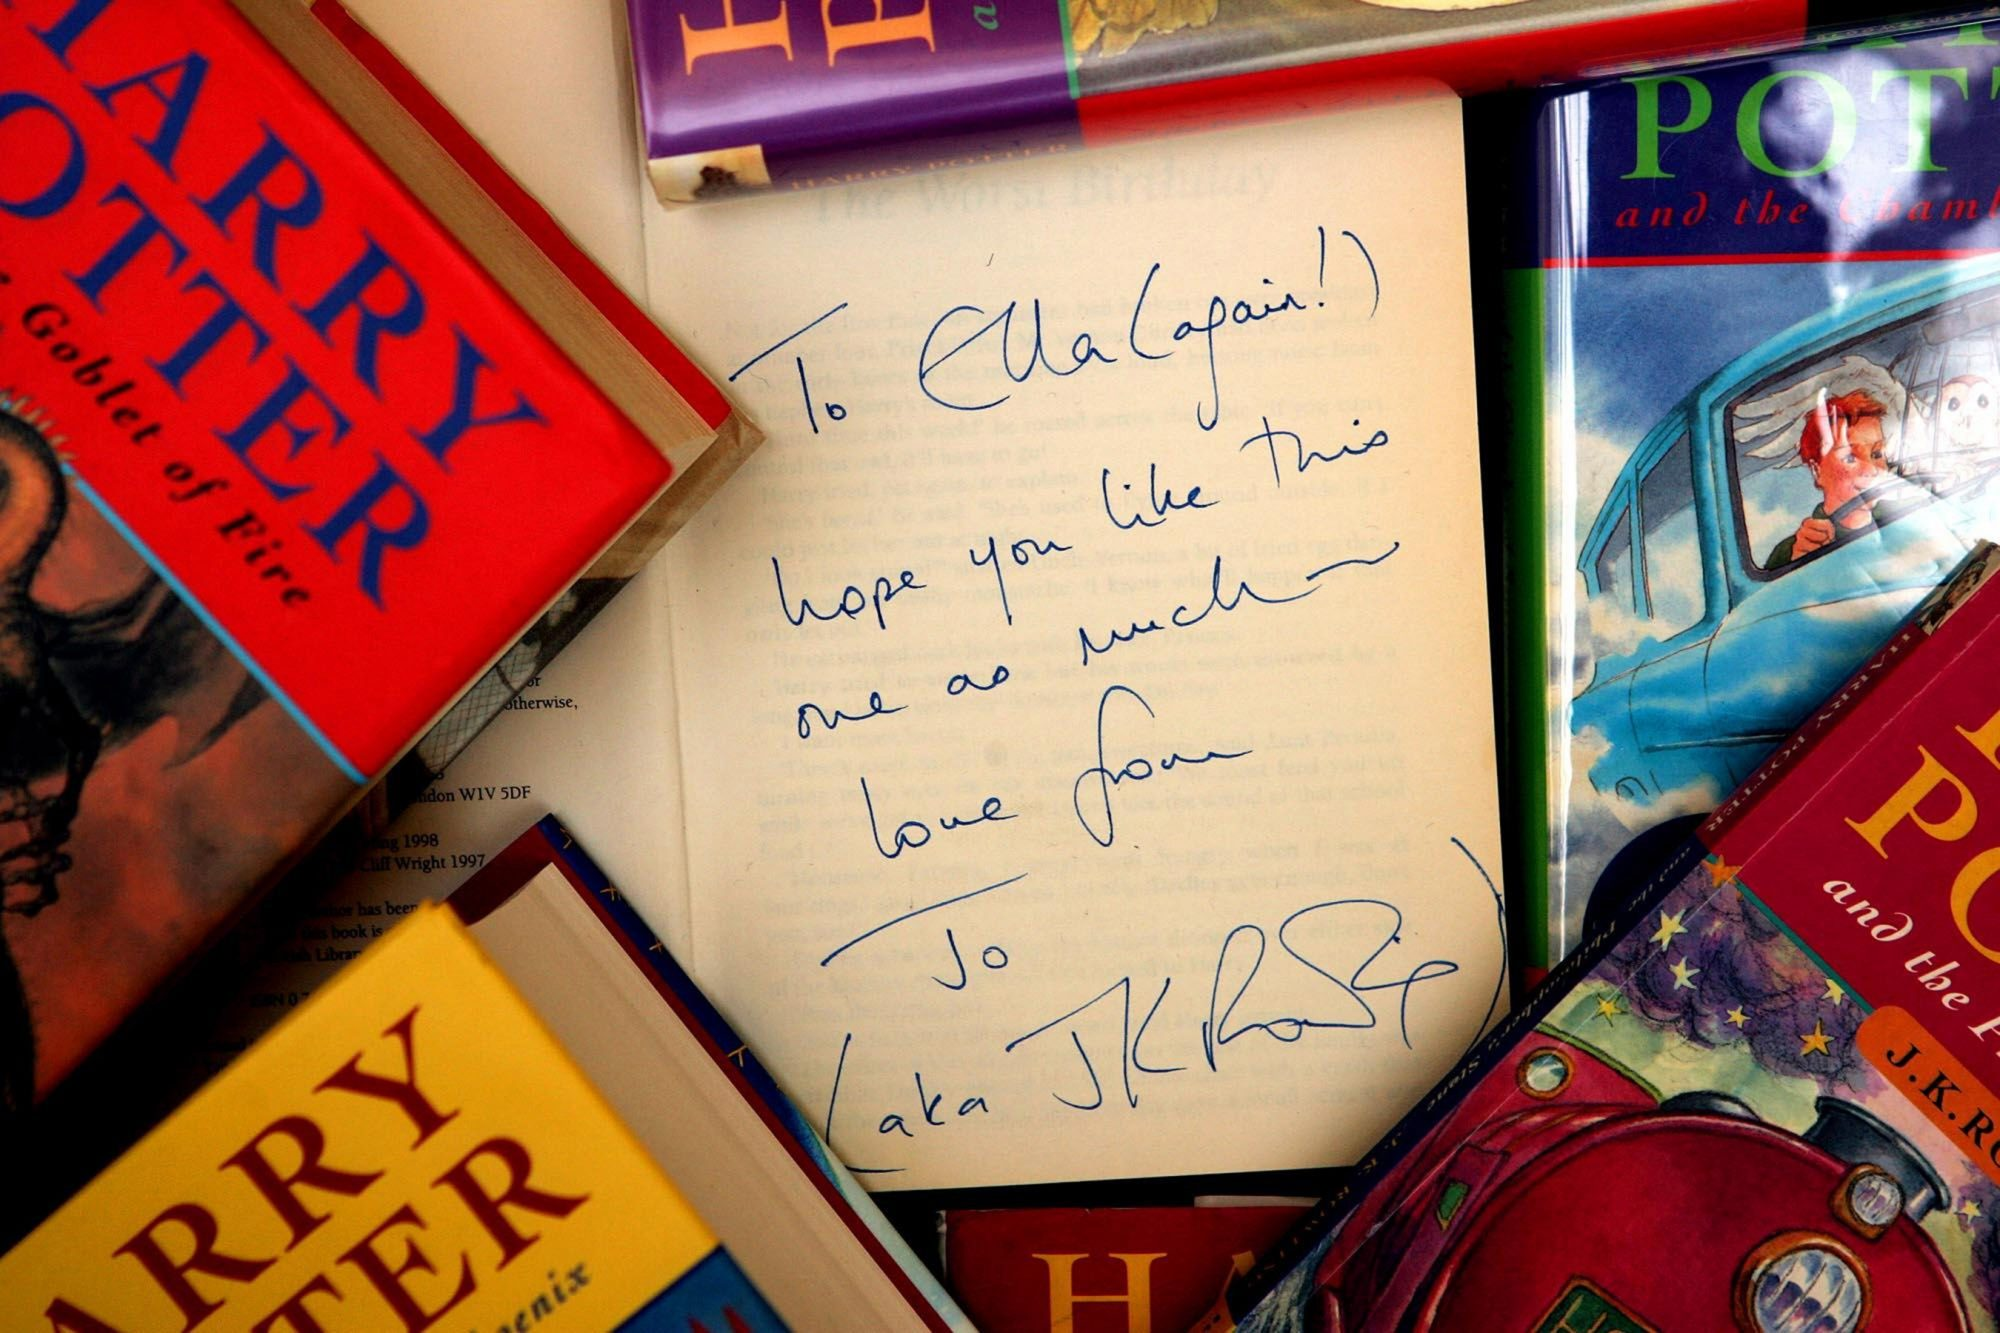 An uncorrected proof copy of J.K Rowling's Harry Potter and the Philosopher's Stone will go under the hammer at Christie's.